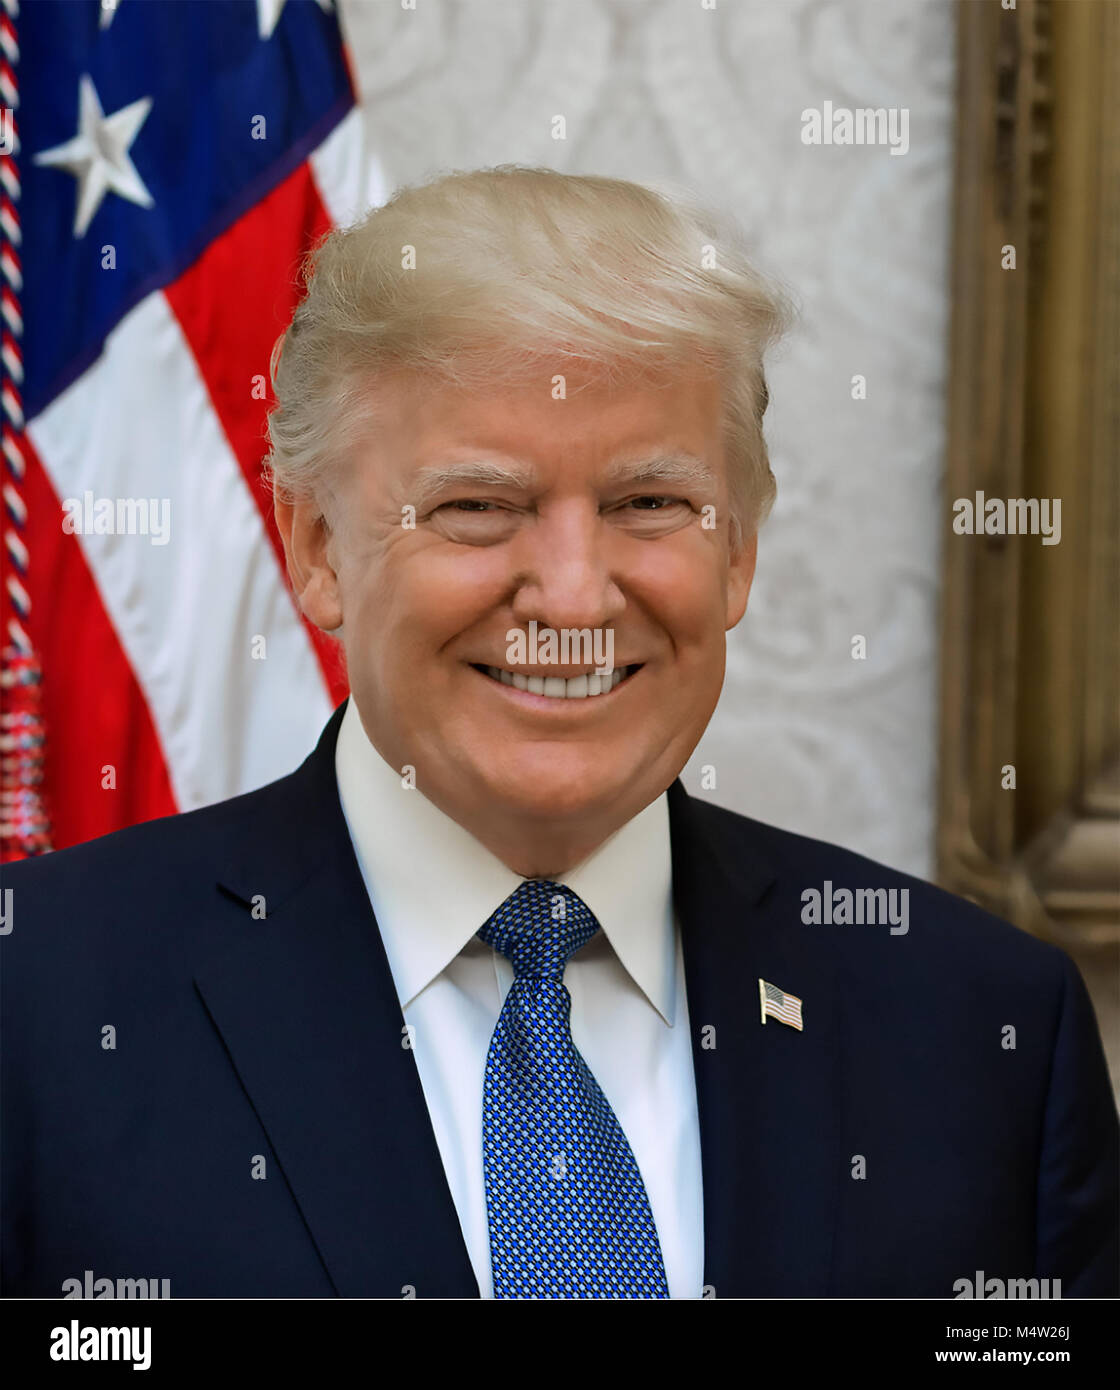 DONALD TRUMP as 45th President of the United States on 6 October 2017. Photo: Shealah Craighead - Stock Image